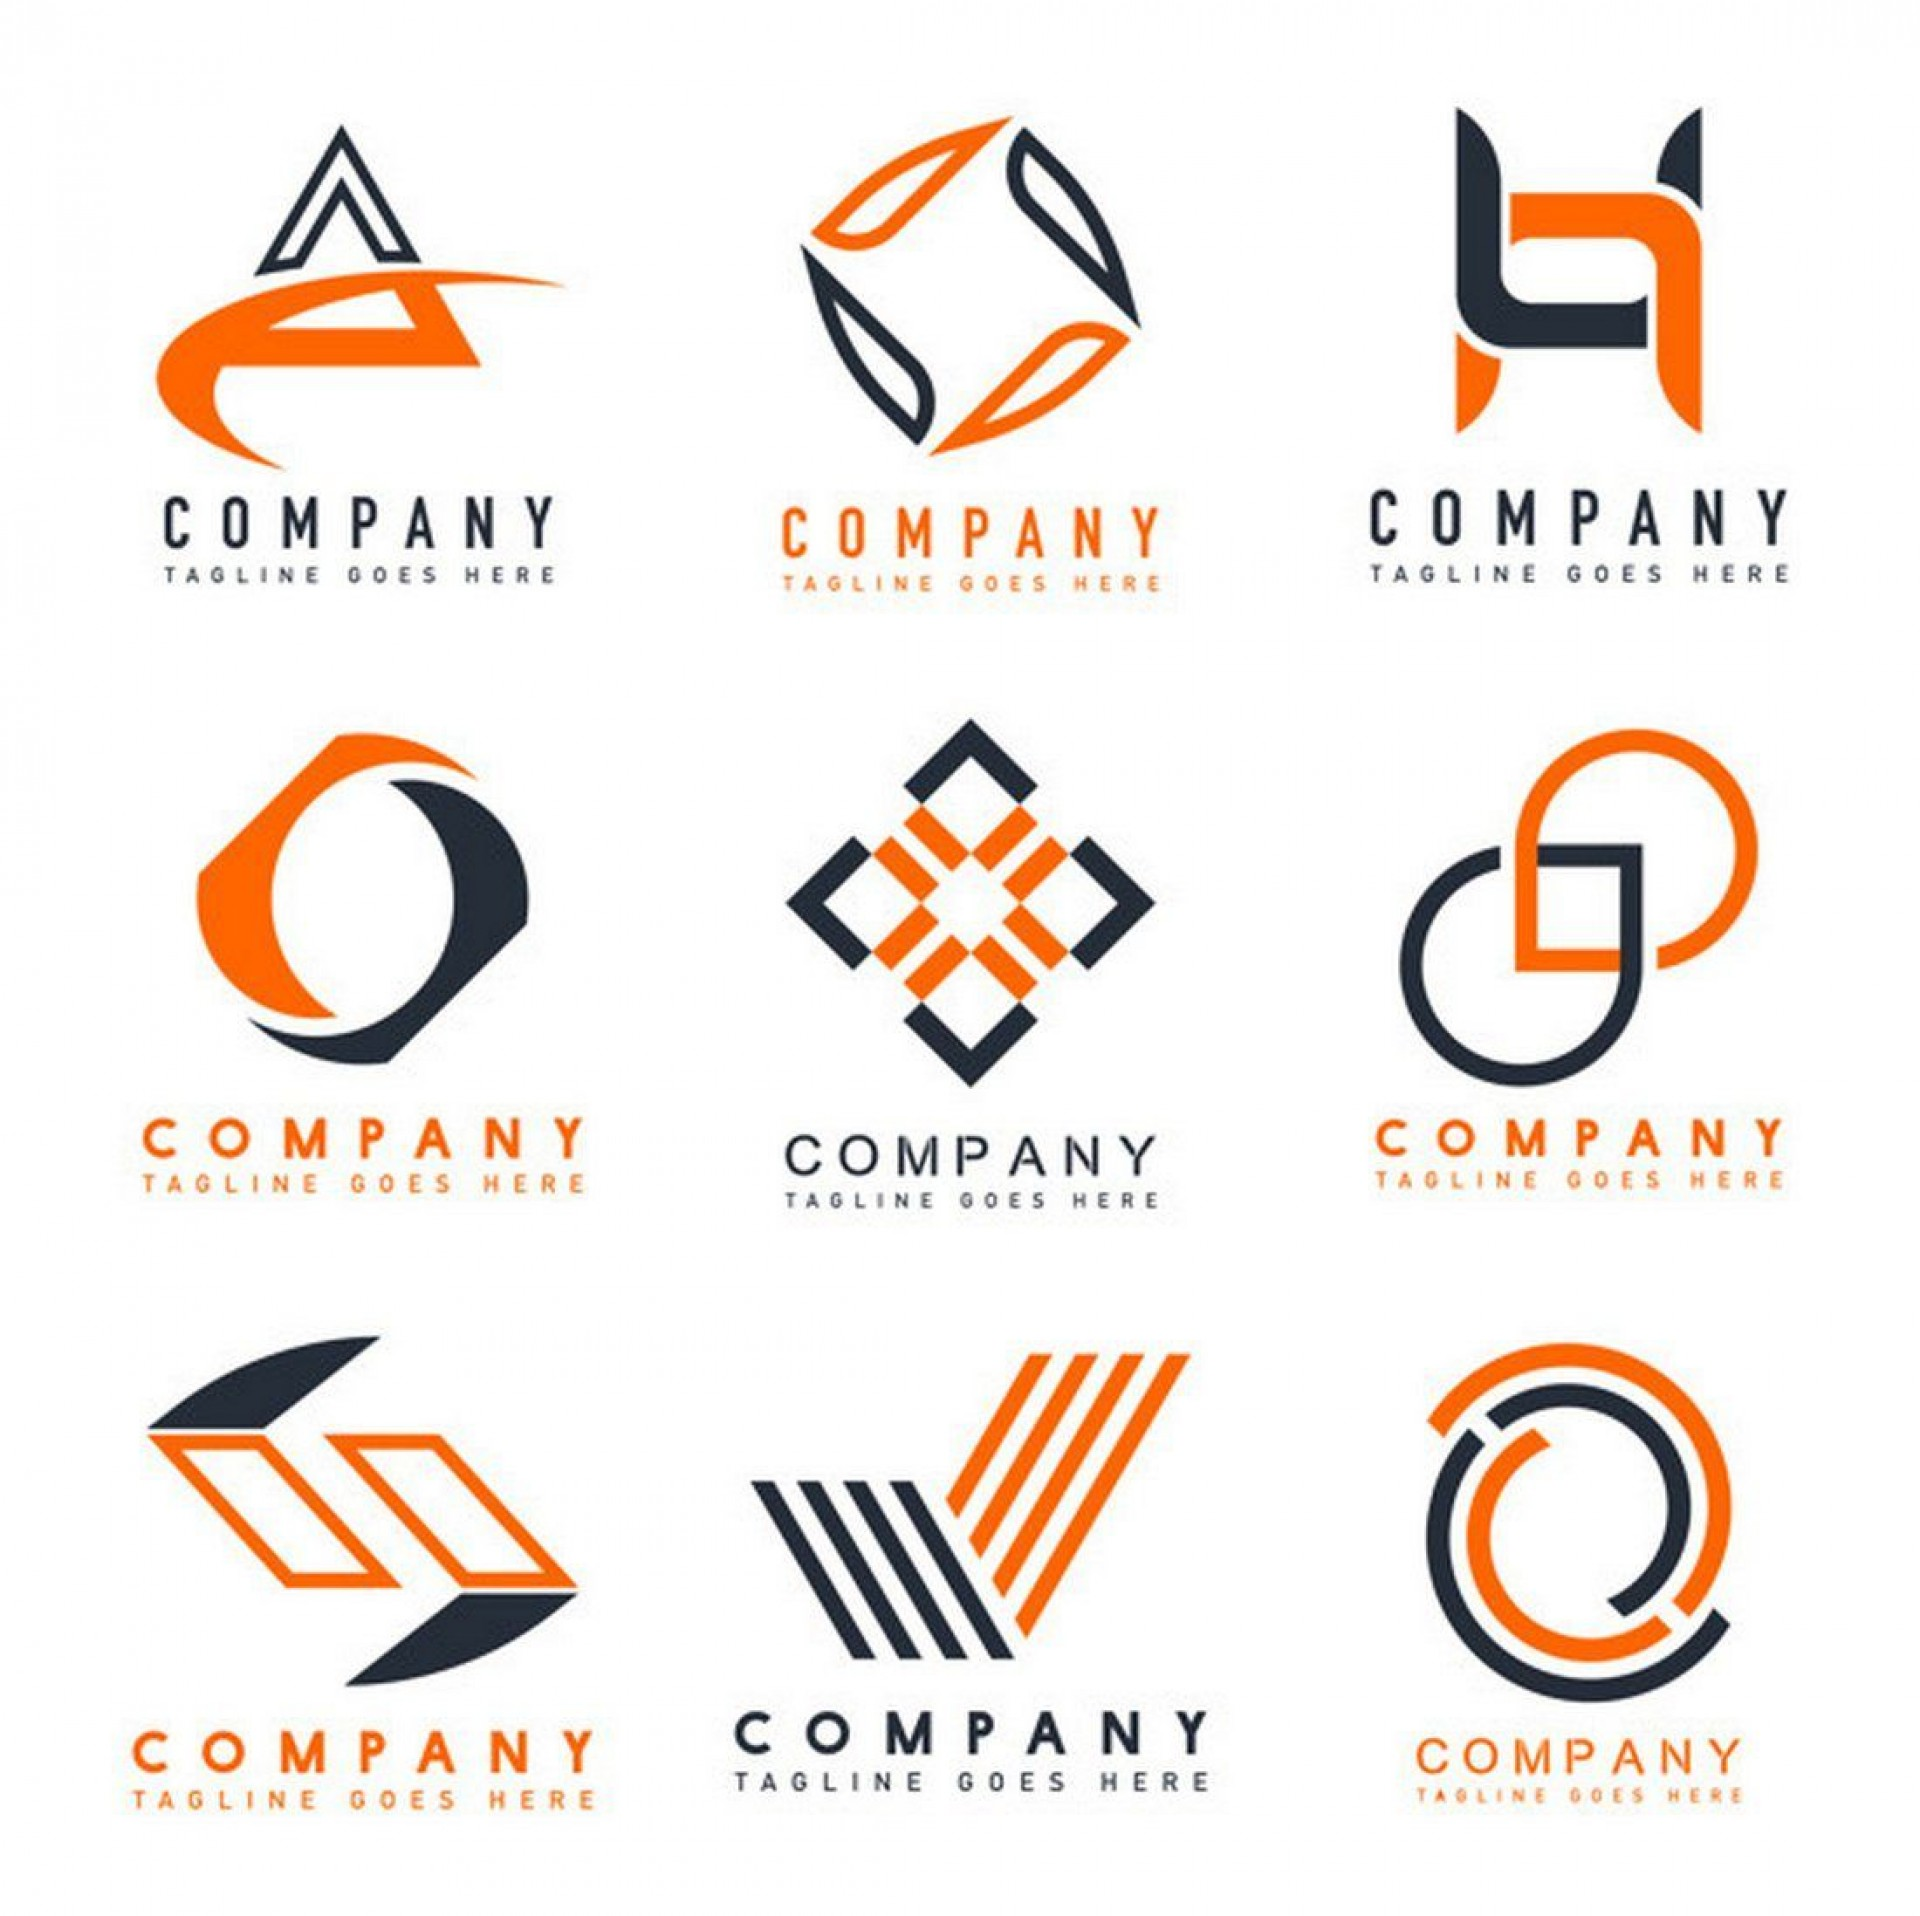 005 Formidable Free Busines Logo Template Concept  Templates Design Download Powerpoint1920